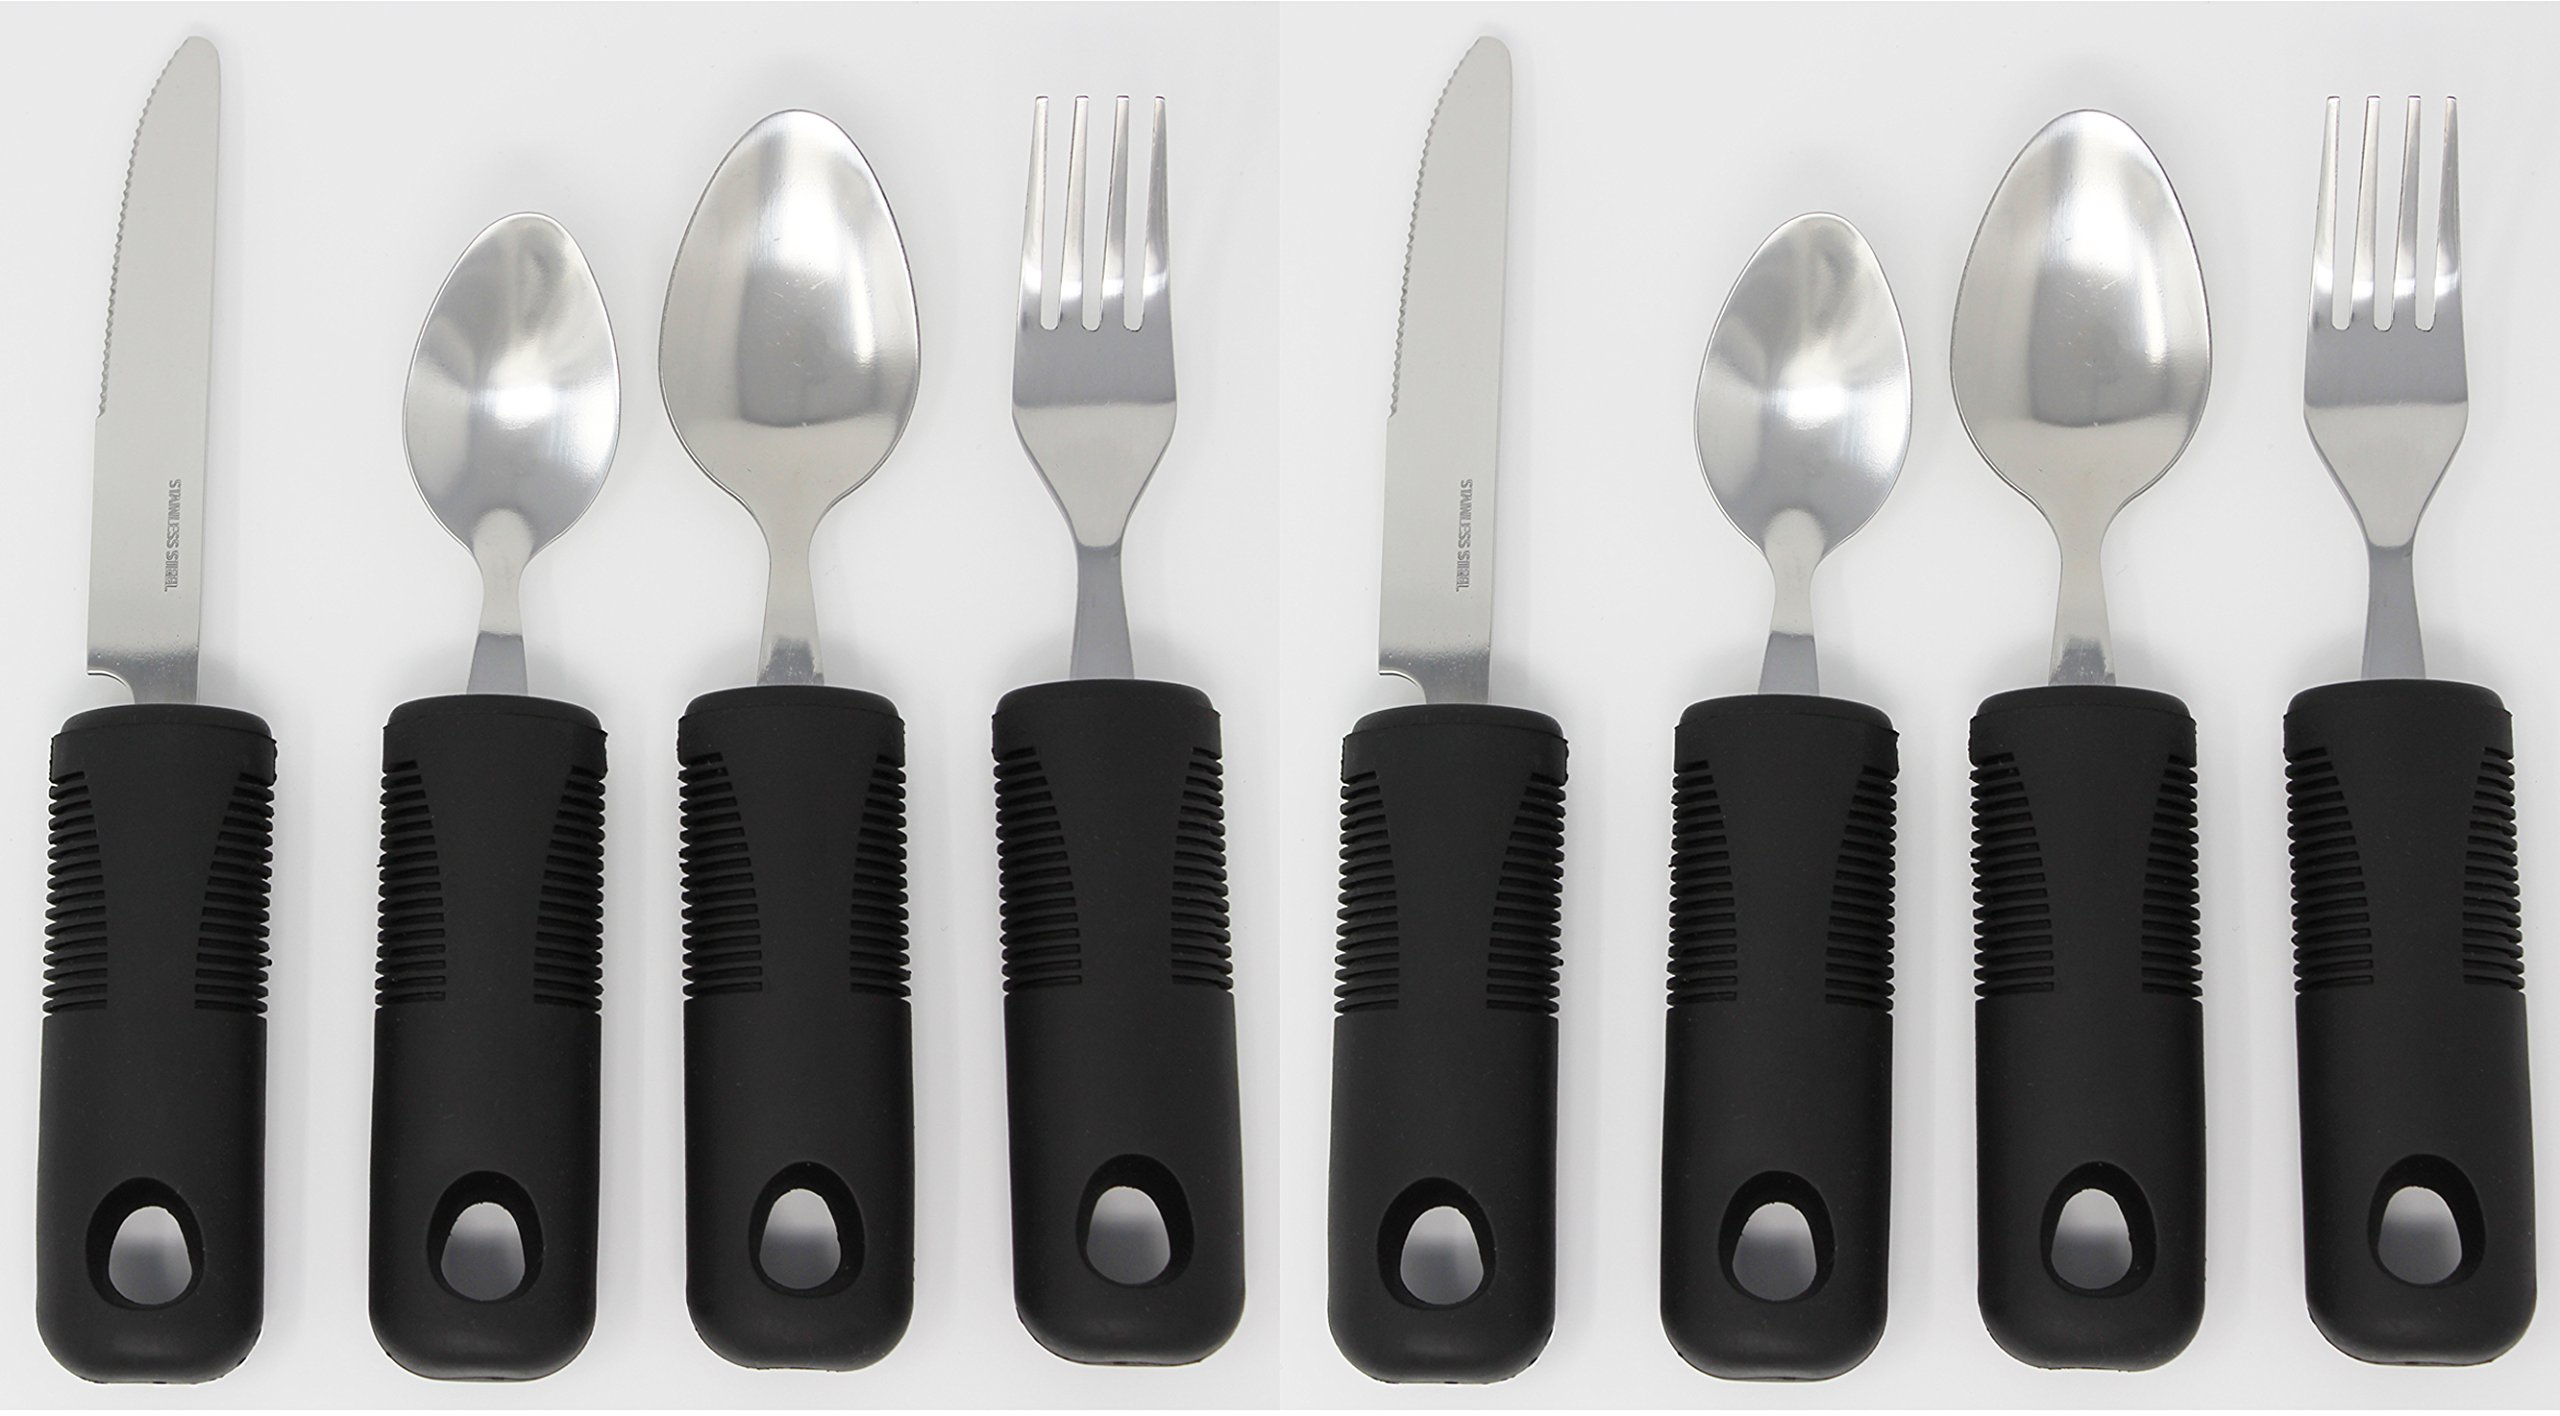 Adaptive Utensils (8-Piece Kitchen Set) Wide, Non-Weighted, Non-Slip Handles for Hand Tremors, Arthritis, Parkinson's Or Elderly use | Stainless Steel Knife, Fork, Spoons (Black - 2 Sets)